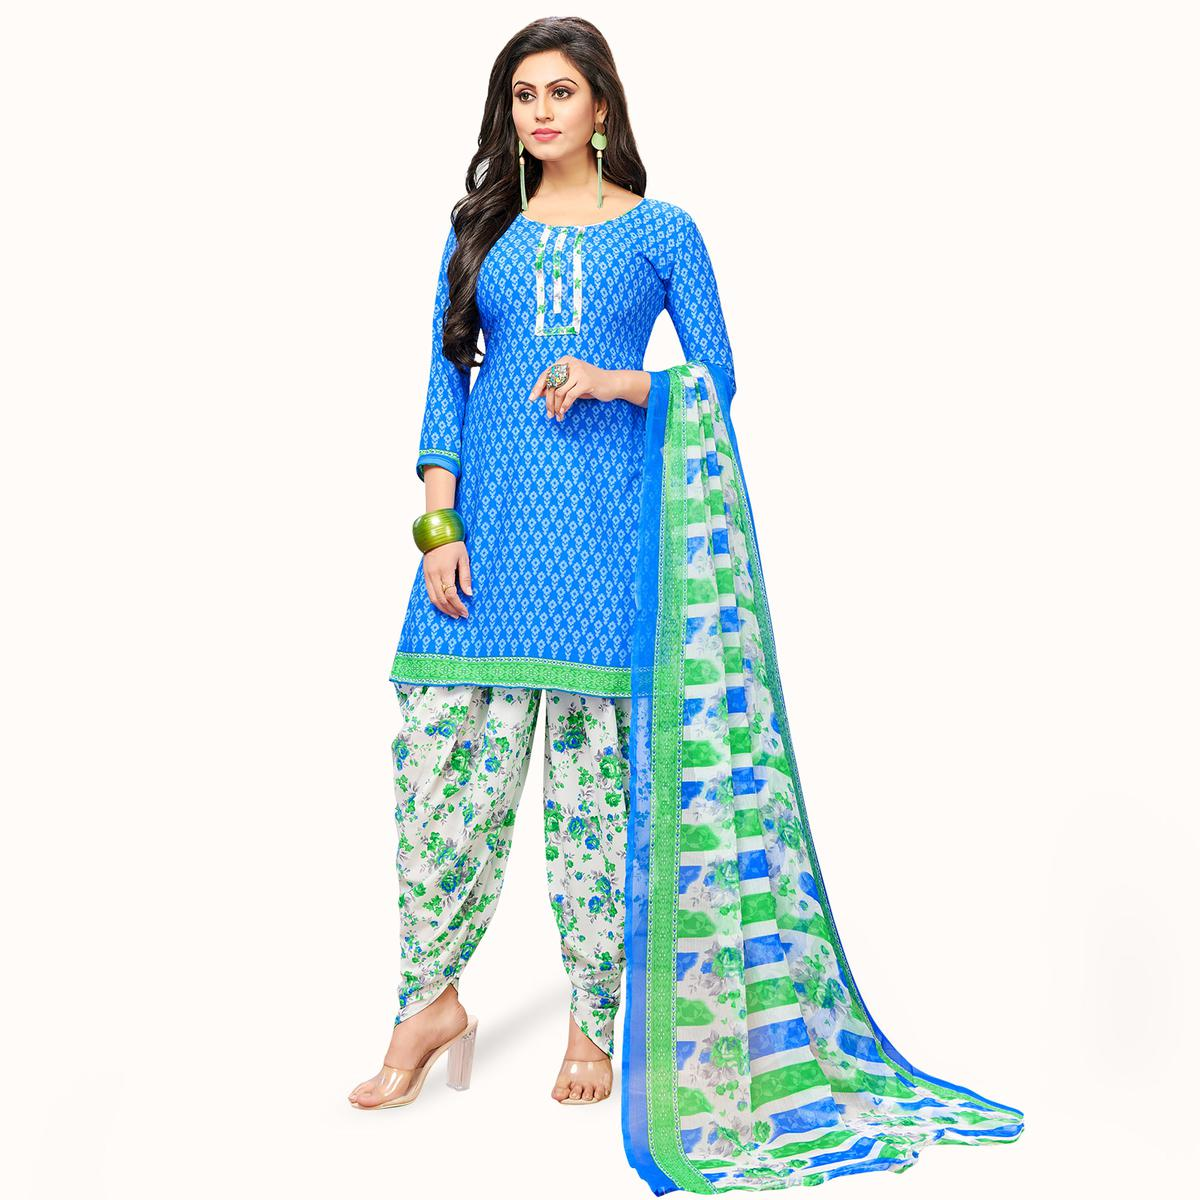 Mesmeric Blue Colored Casual Wear Printed Crepe Patiala Suit